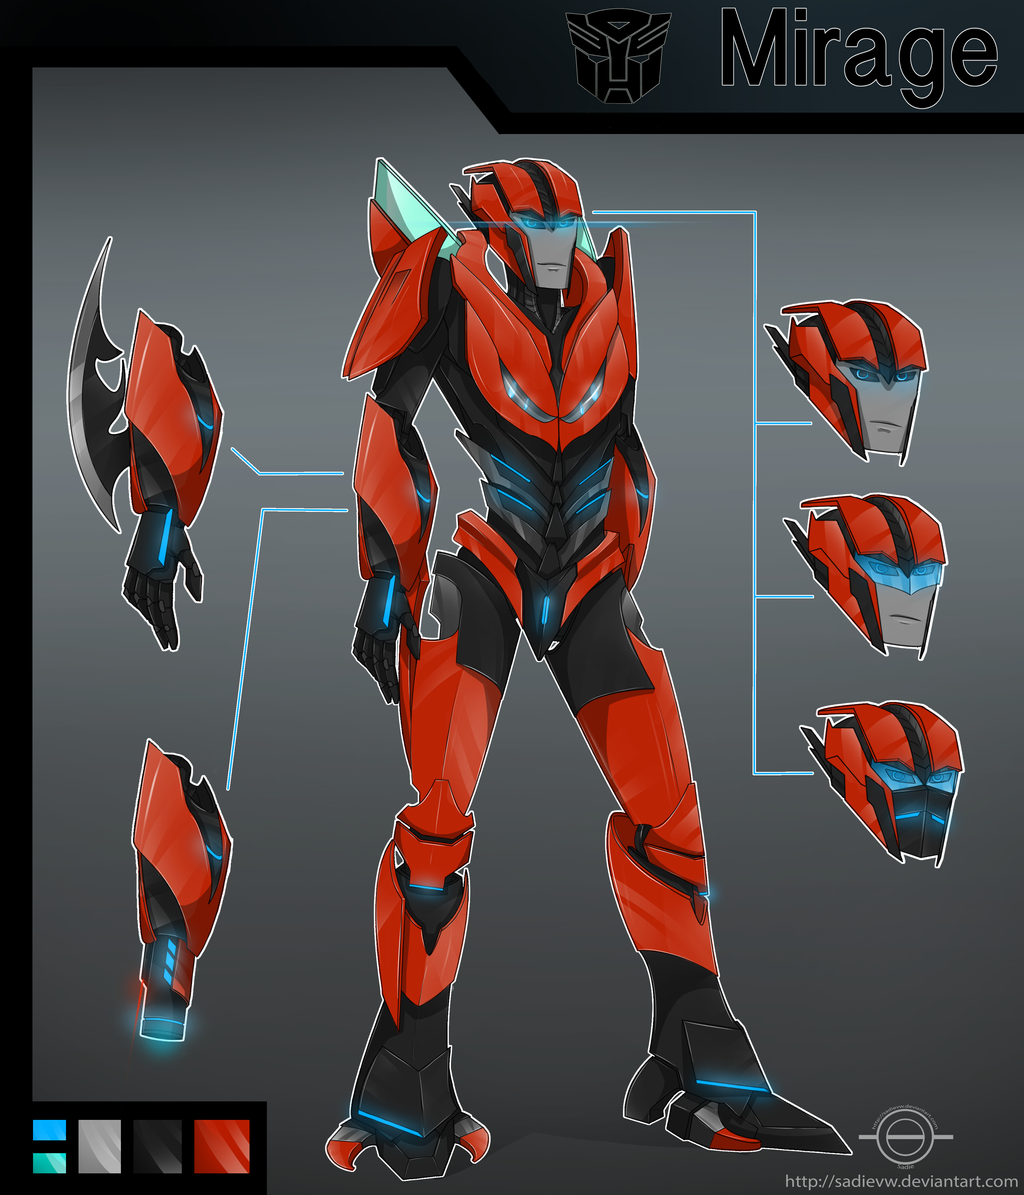 transformers prime mirage by sadievw on deviantart